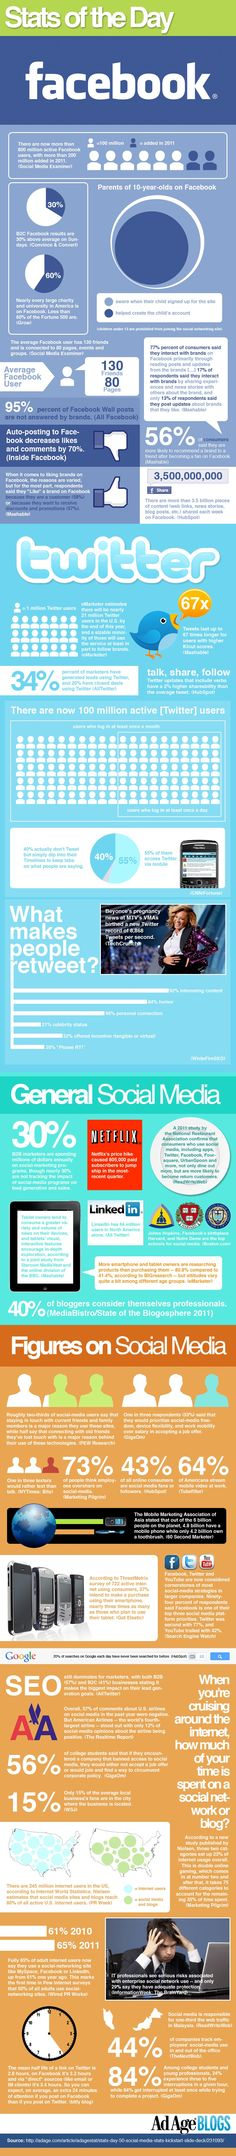 58% spend more than 6 hours per week on Social Media alone!!